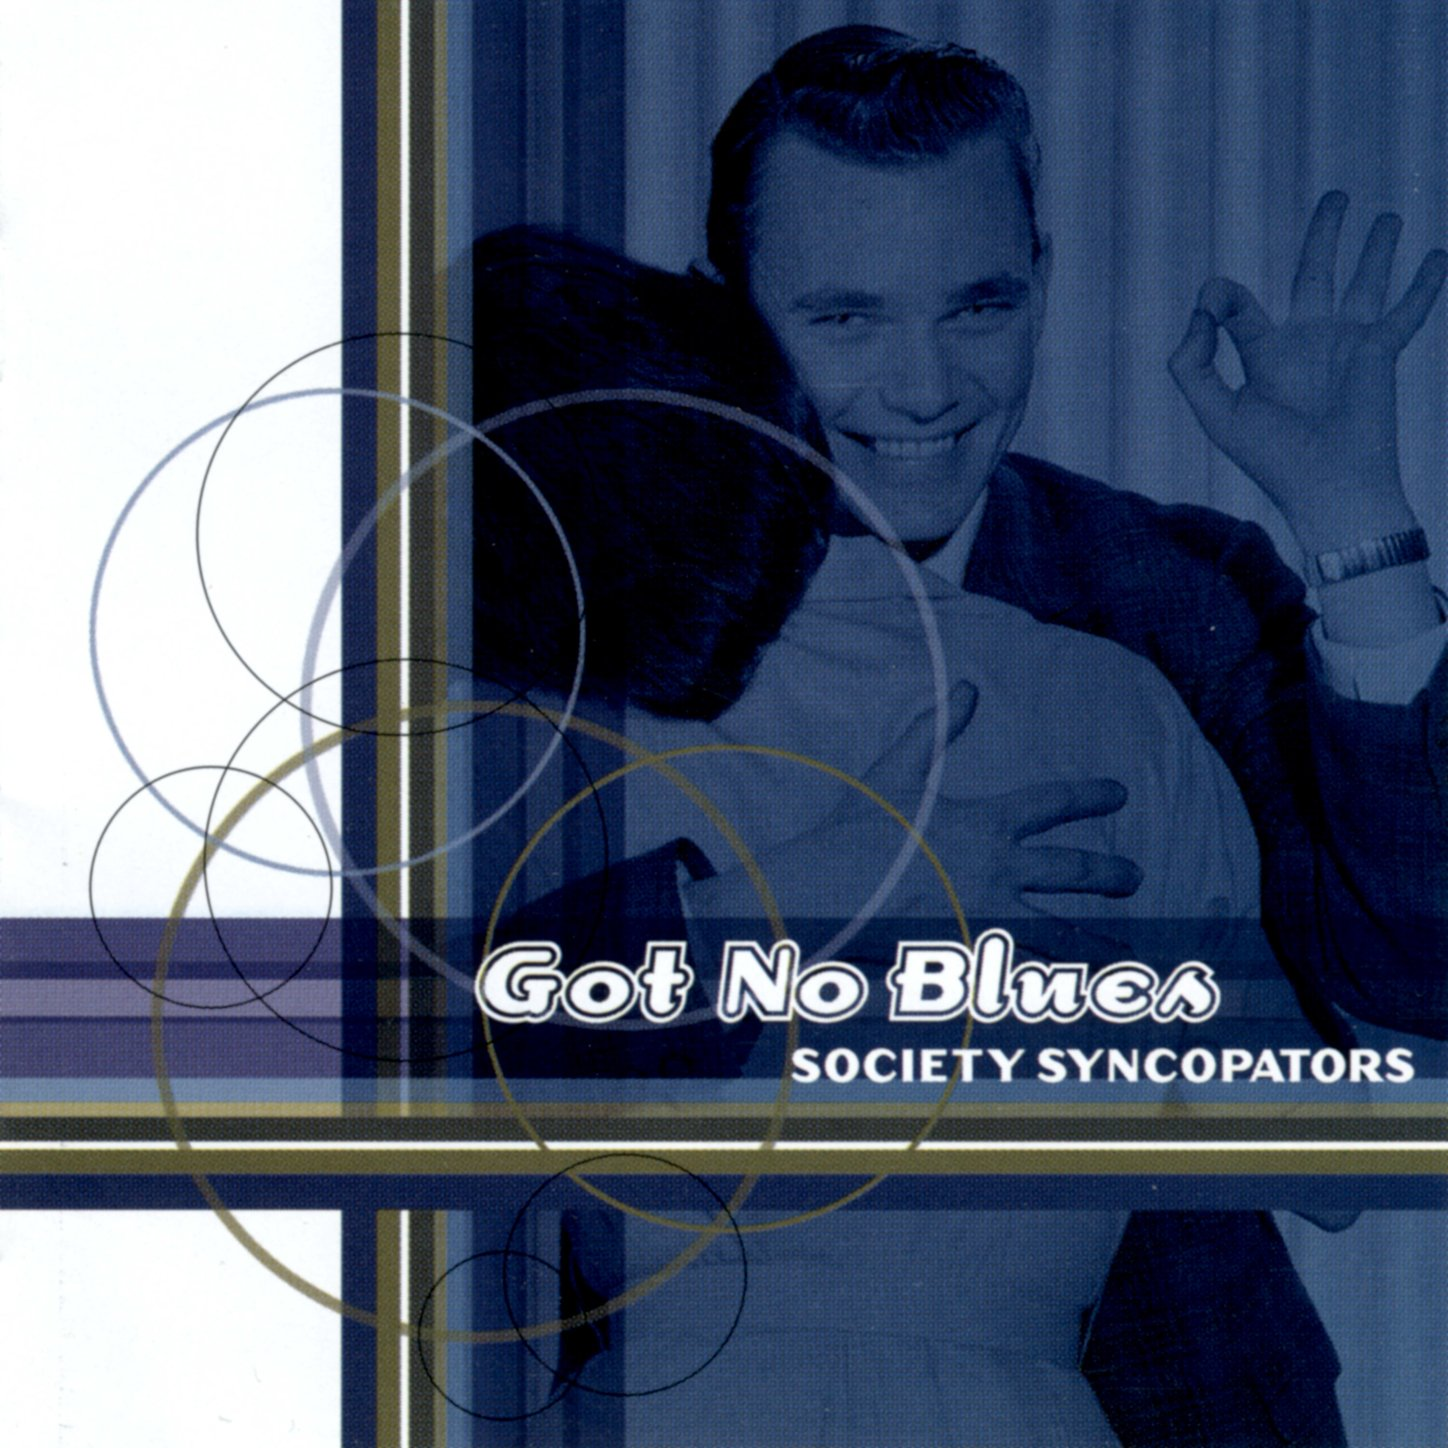 Society Syncopators – Got No Blues (2000) [FLAC]